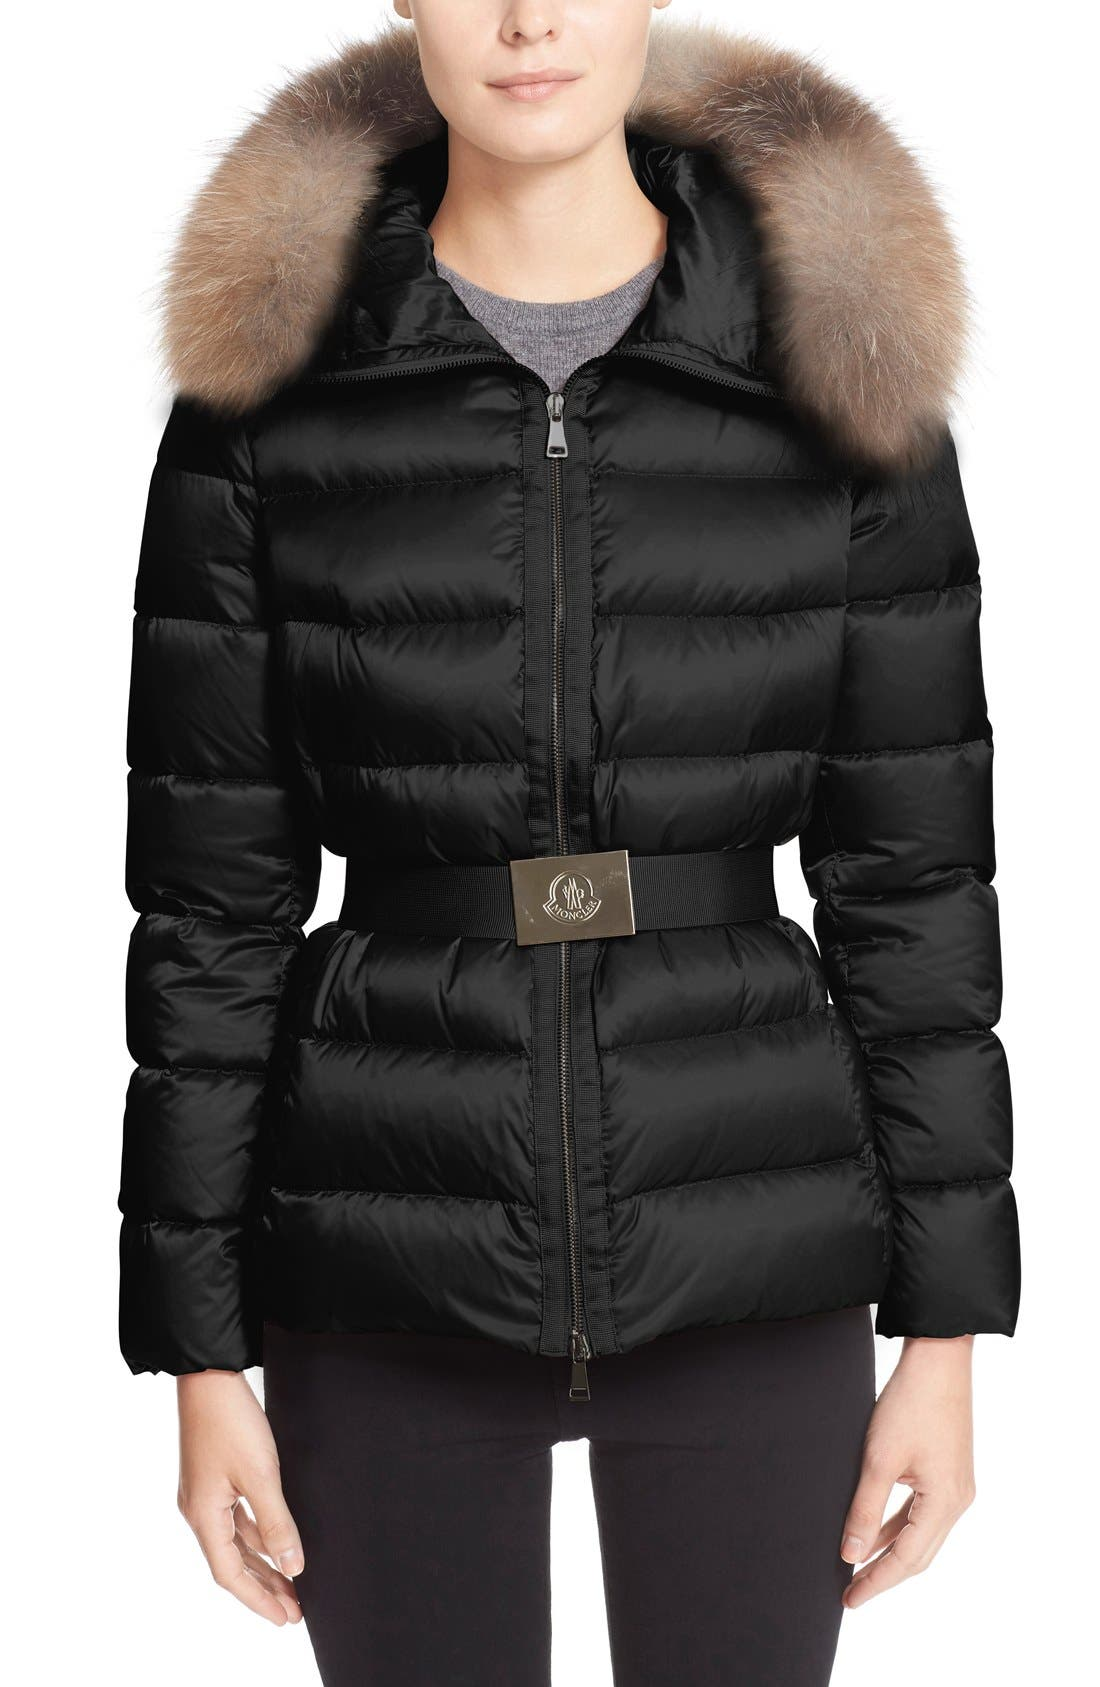 Alternate Image 1 Selected - Moncler 'Tatie' Belted Down Puffer Coat with Removable Genuine Fox Fur Trim